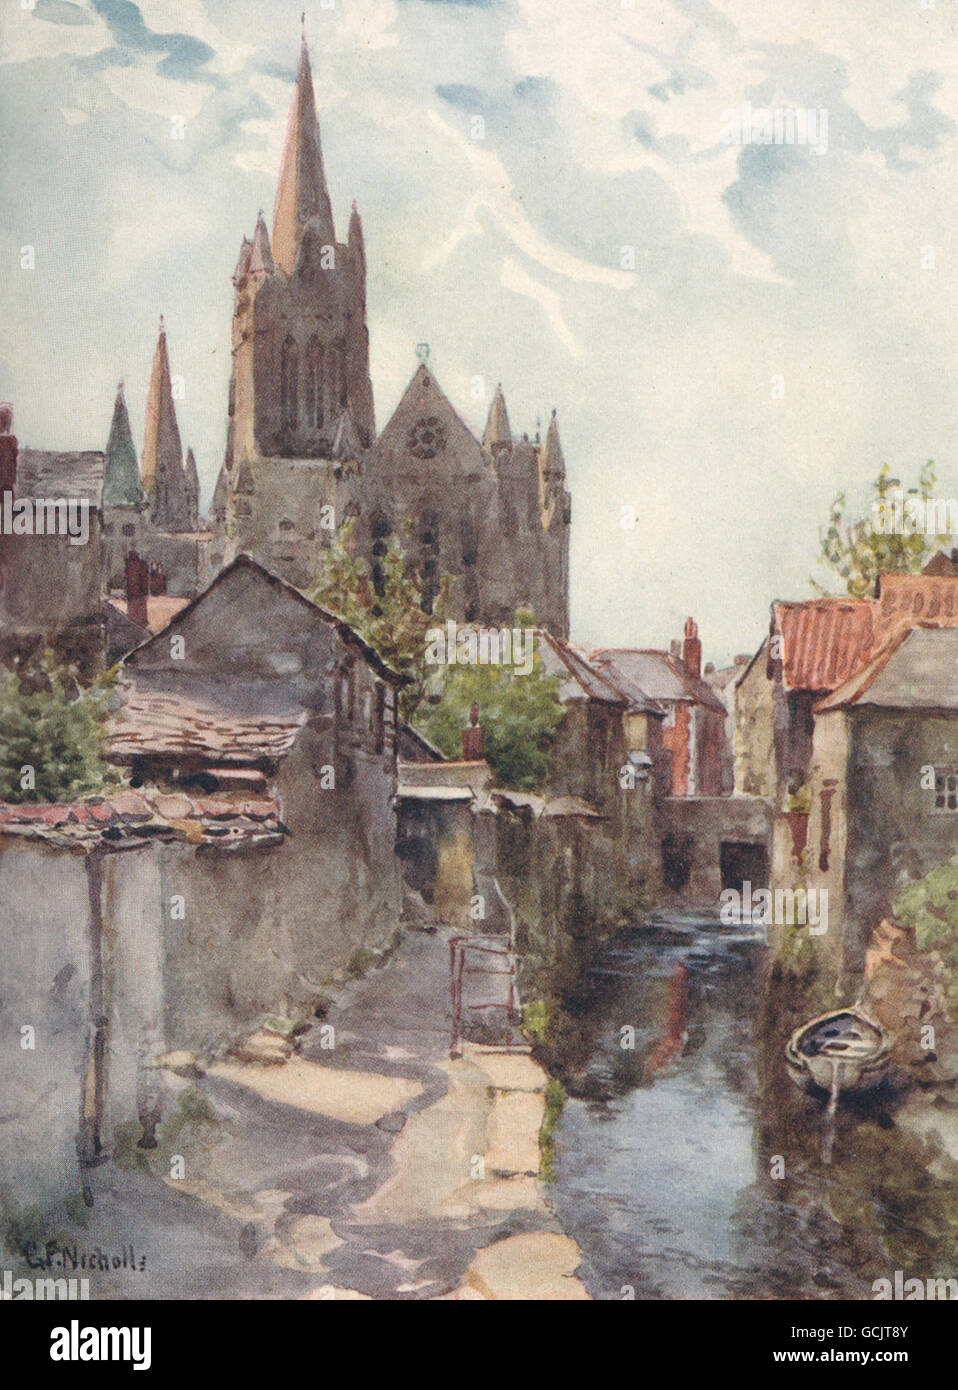 TRURO. View of the Cathedral from the river. Cornwall. By G. F. Nicholls, 1915 - Stock Image